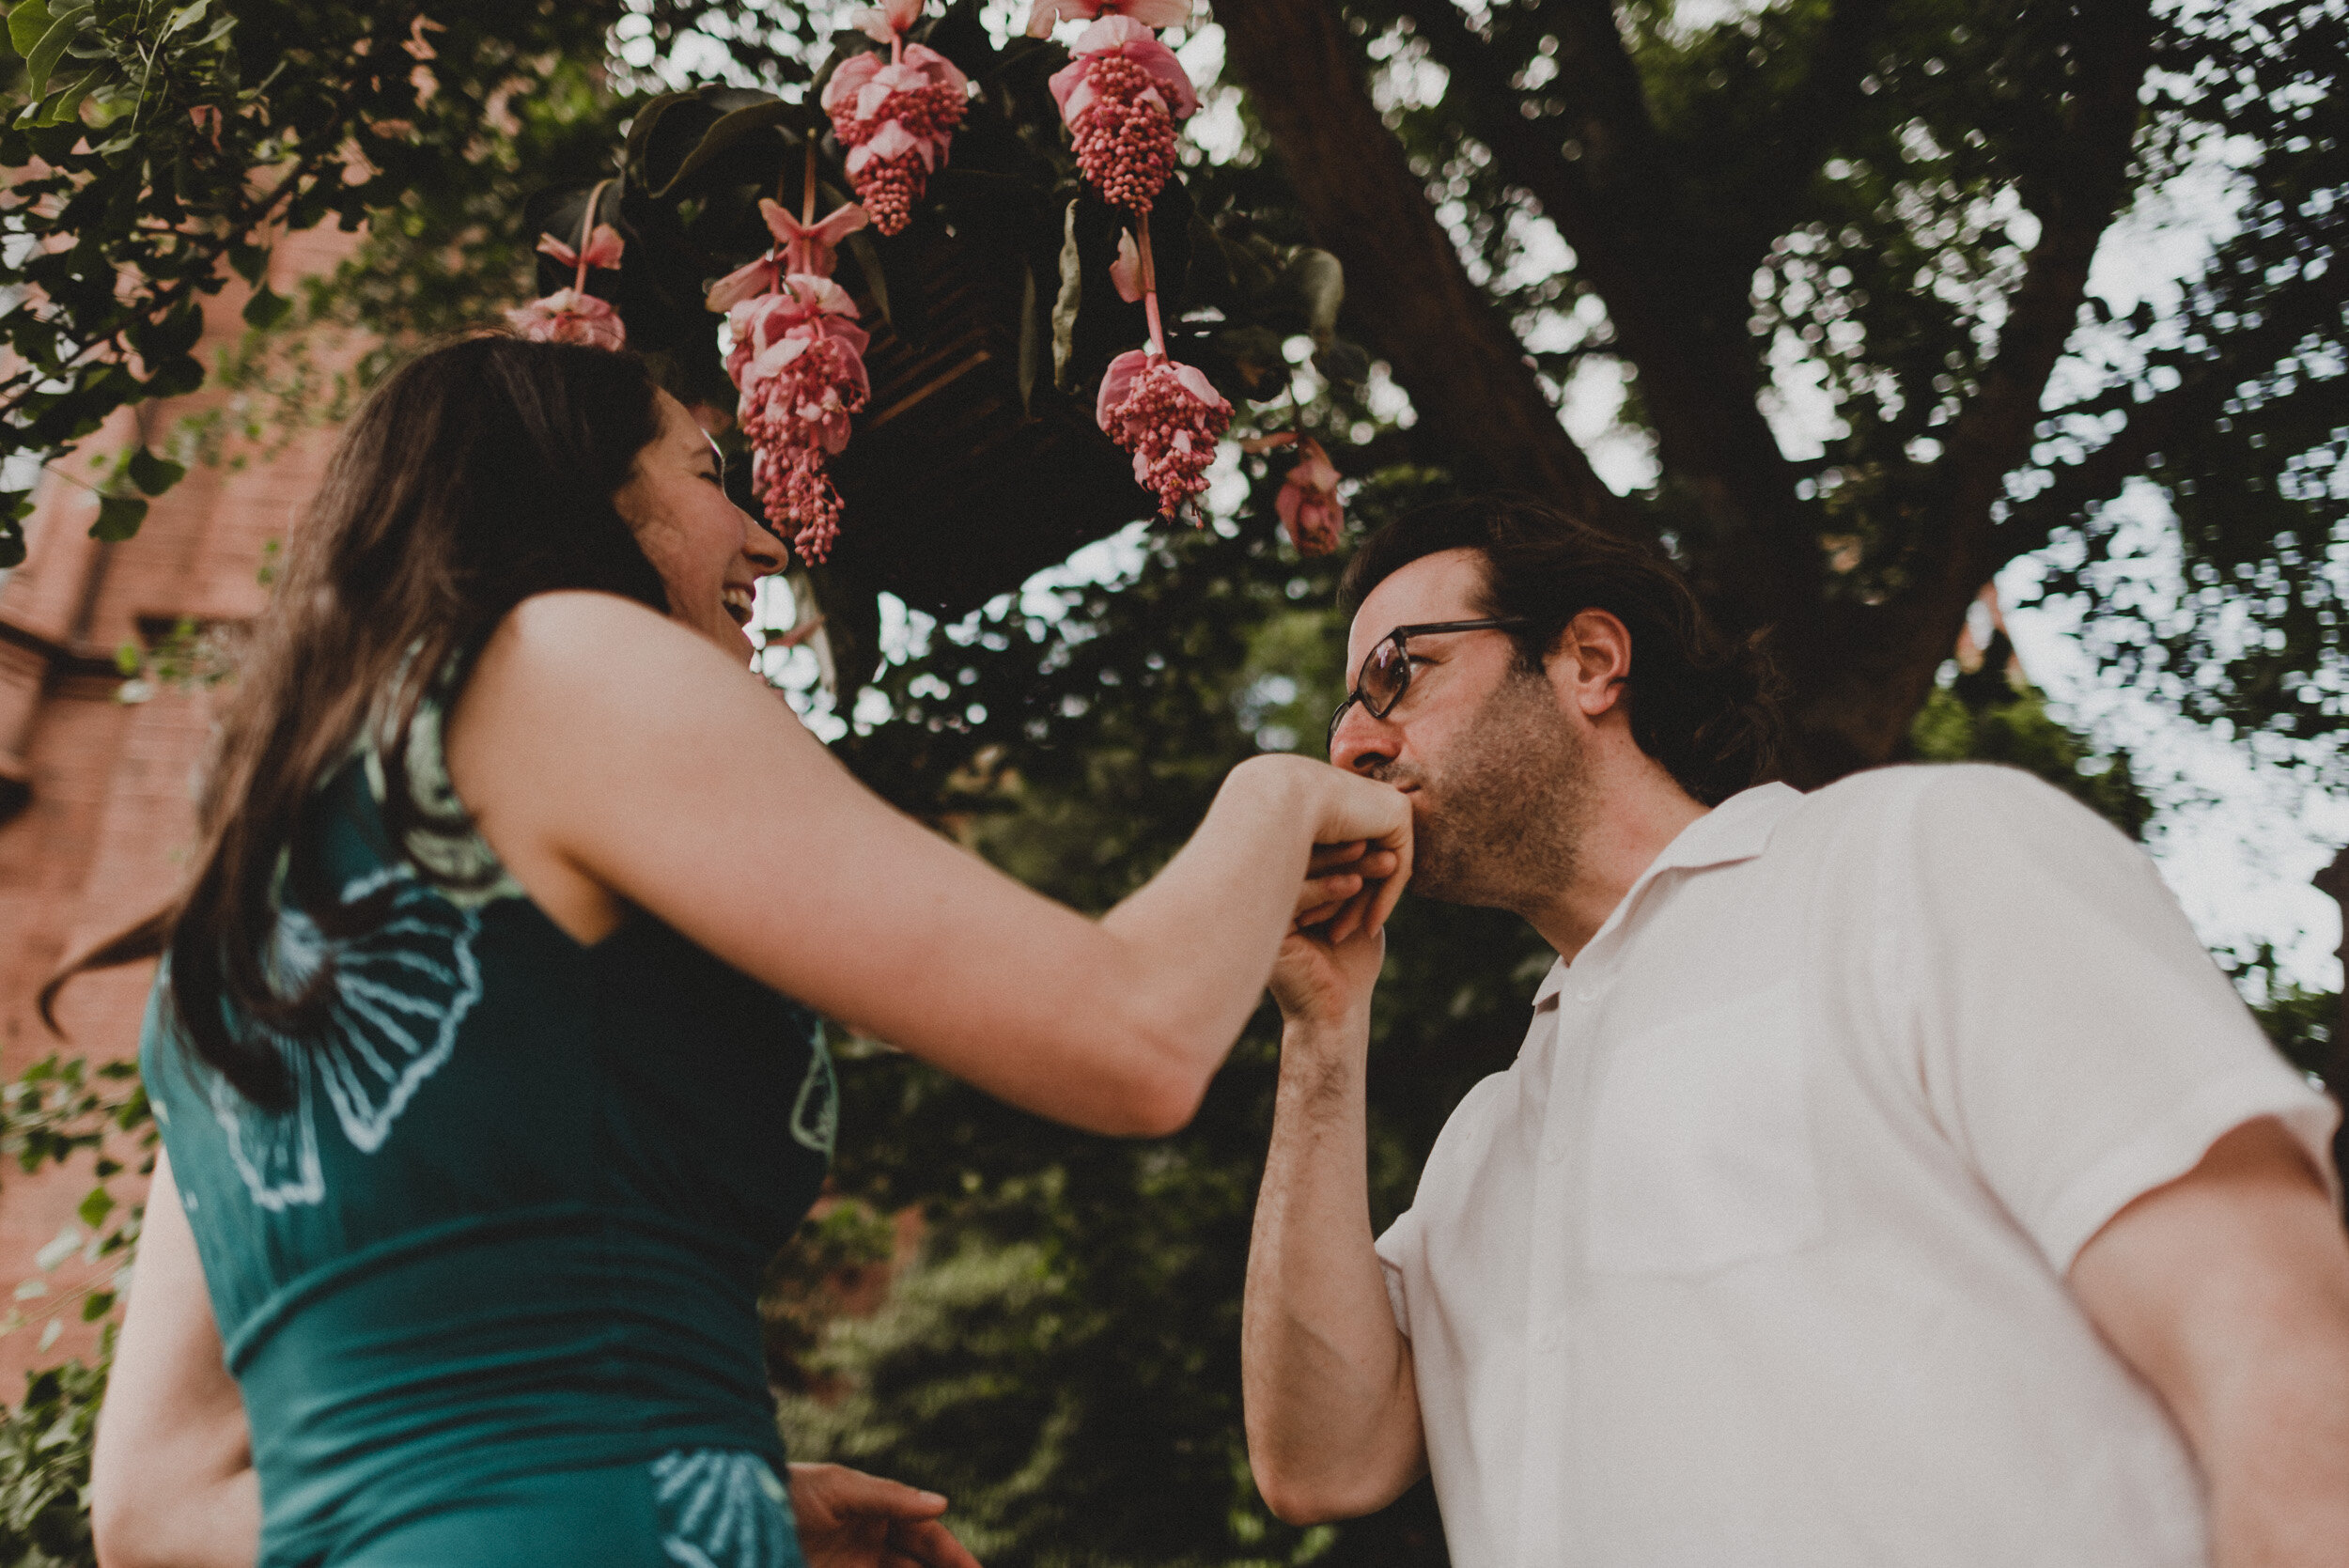 Moongate_Garden_Engagement-18.jpg